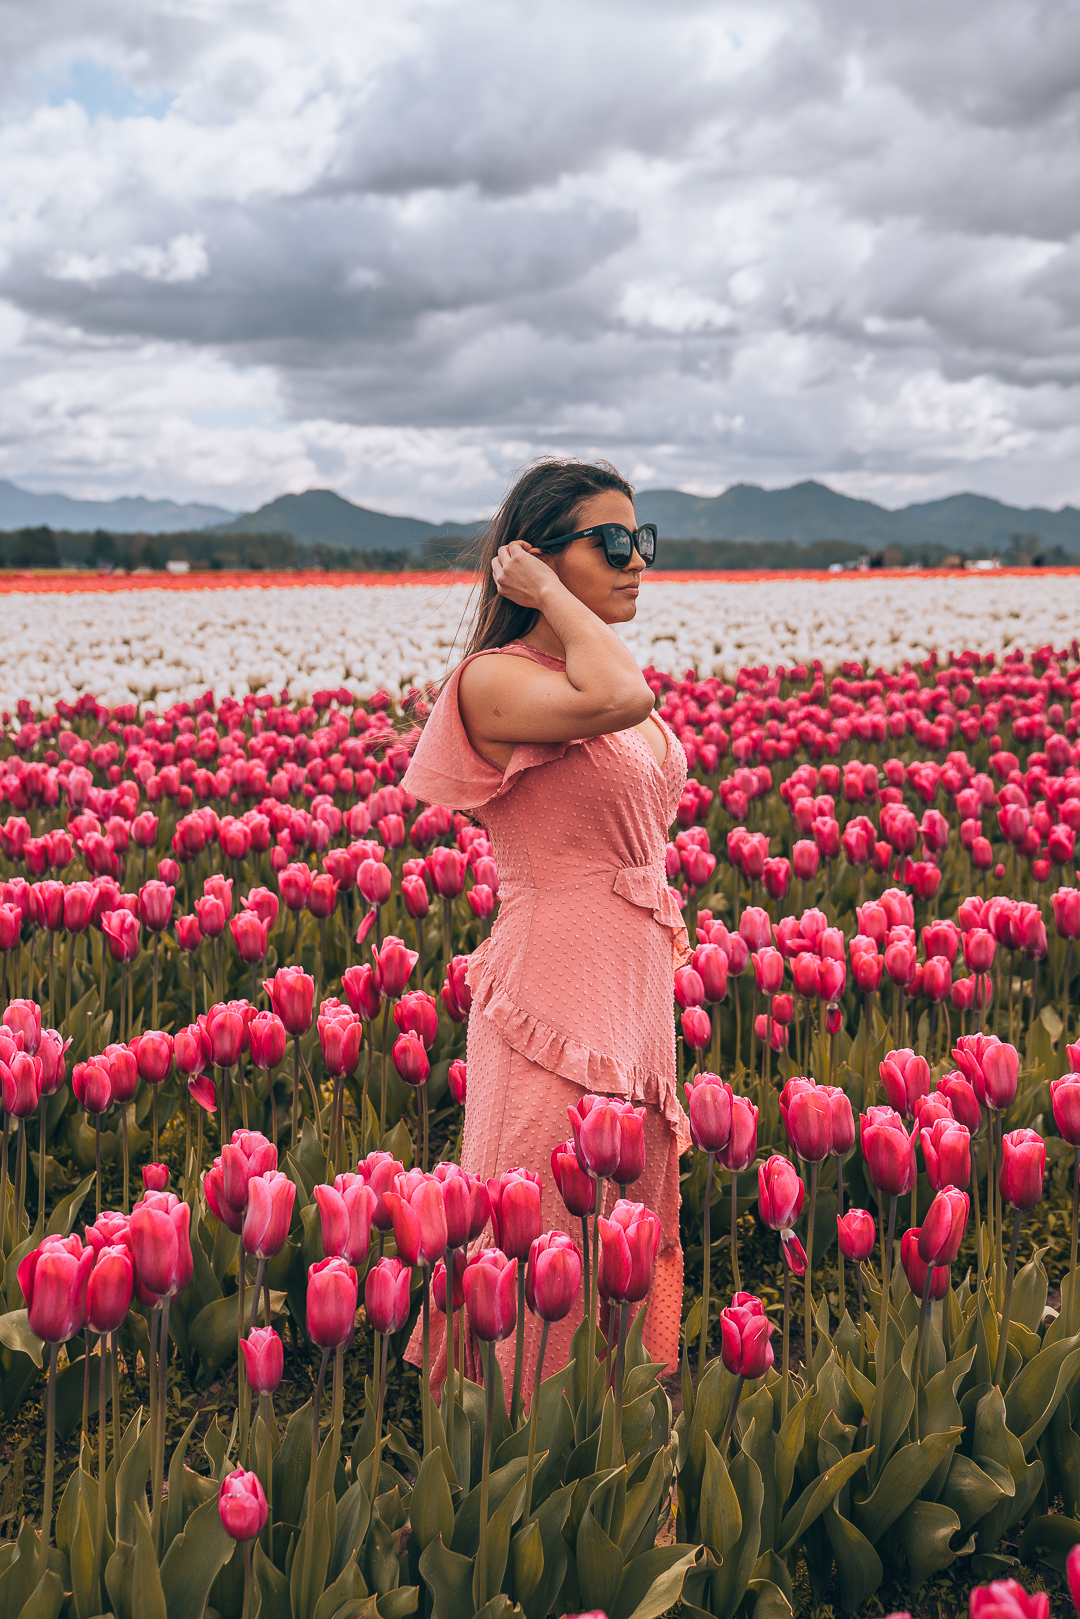 The Most Instagram Worthy Flower Fields - Tulip Festival